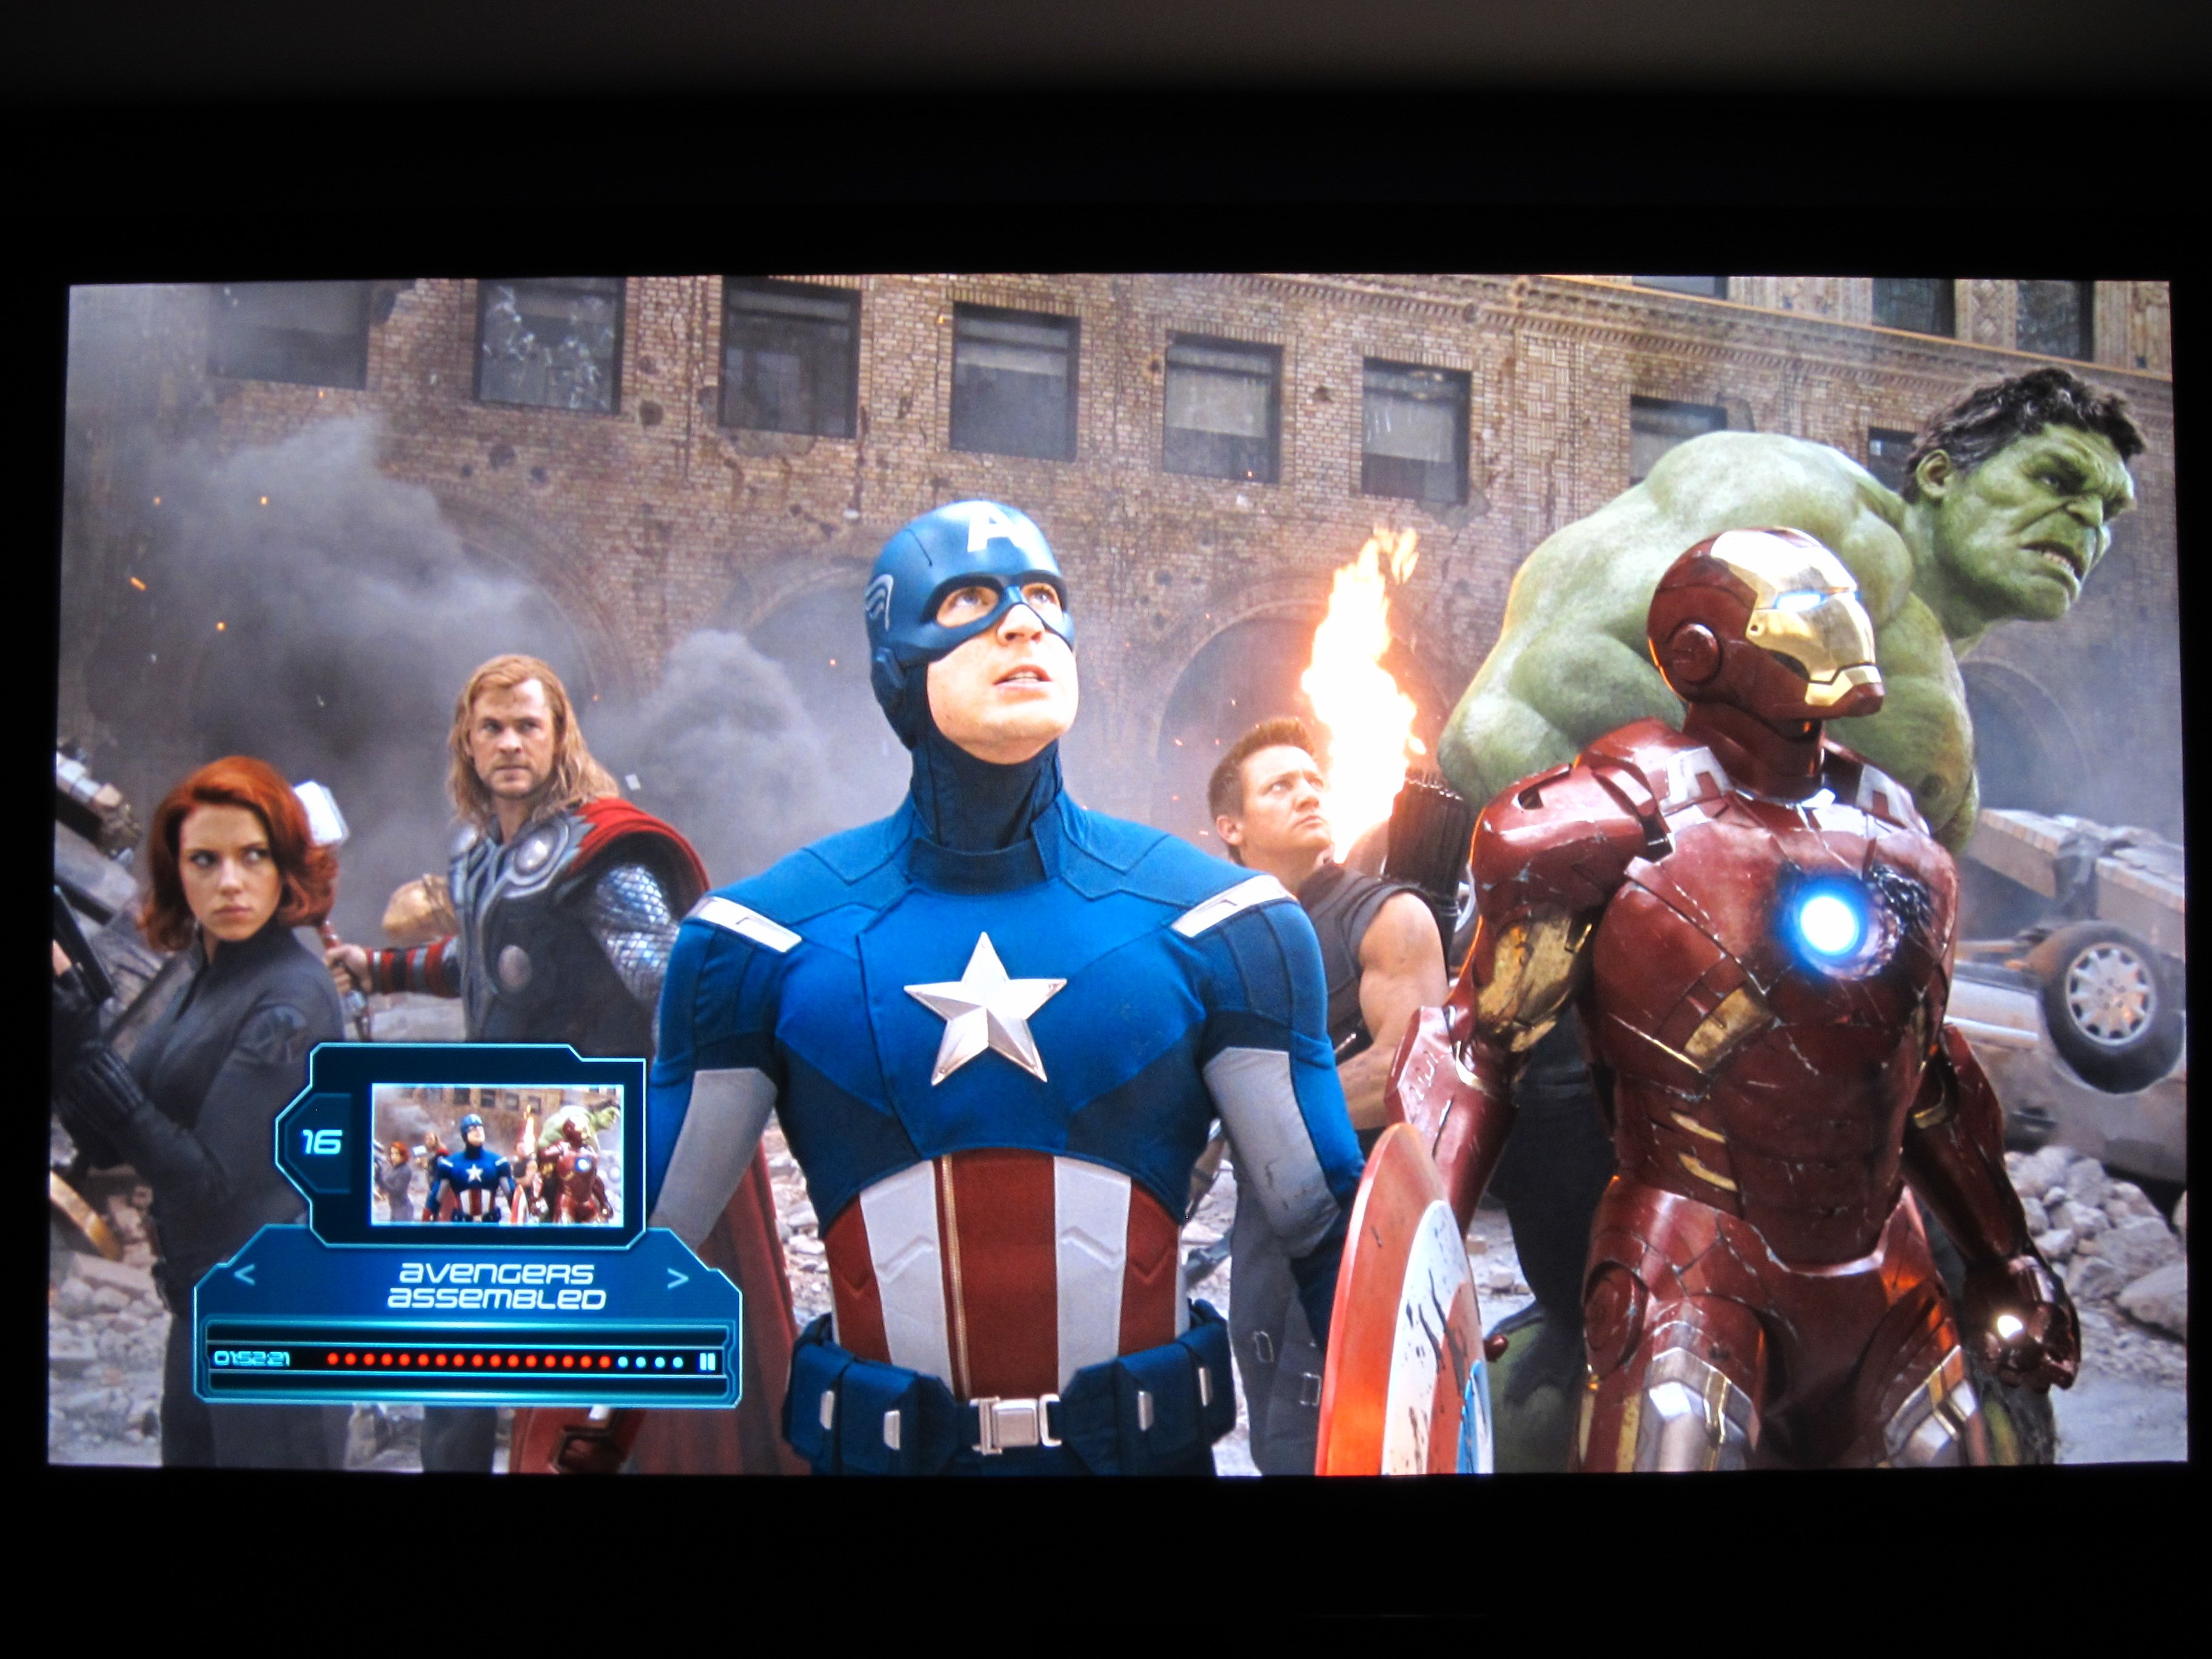 Avengers looks amazing on the new screen